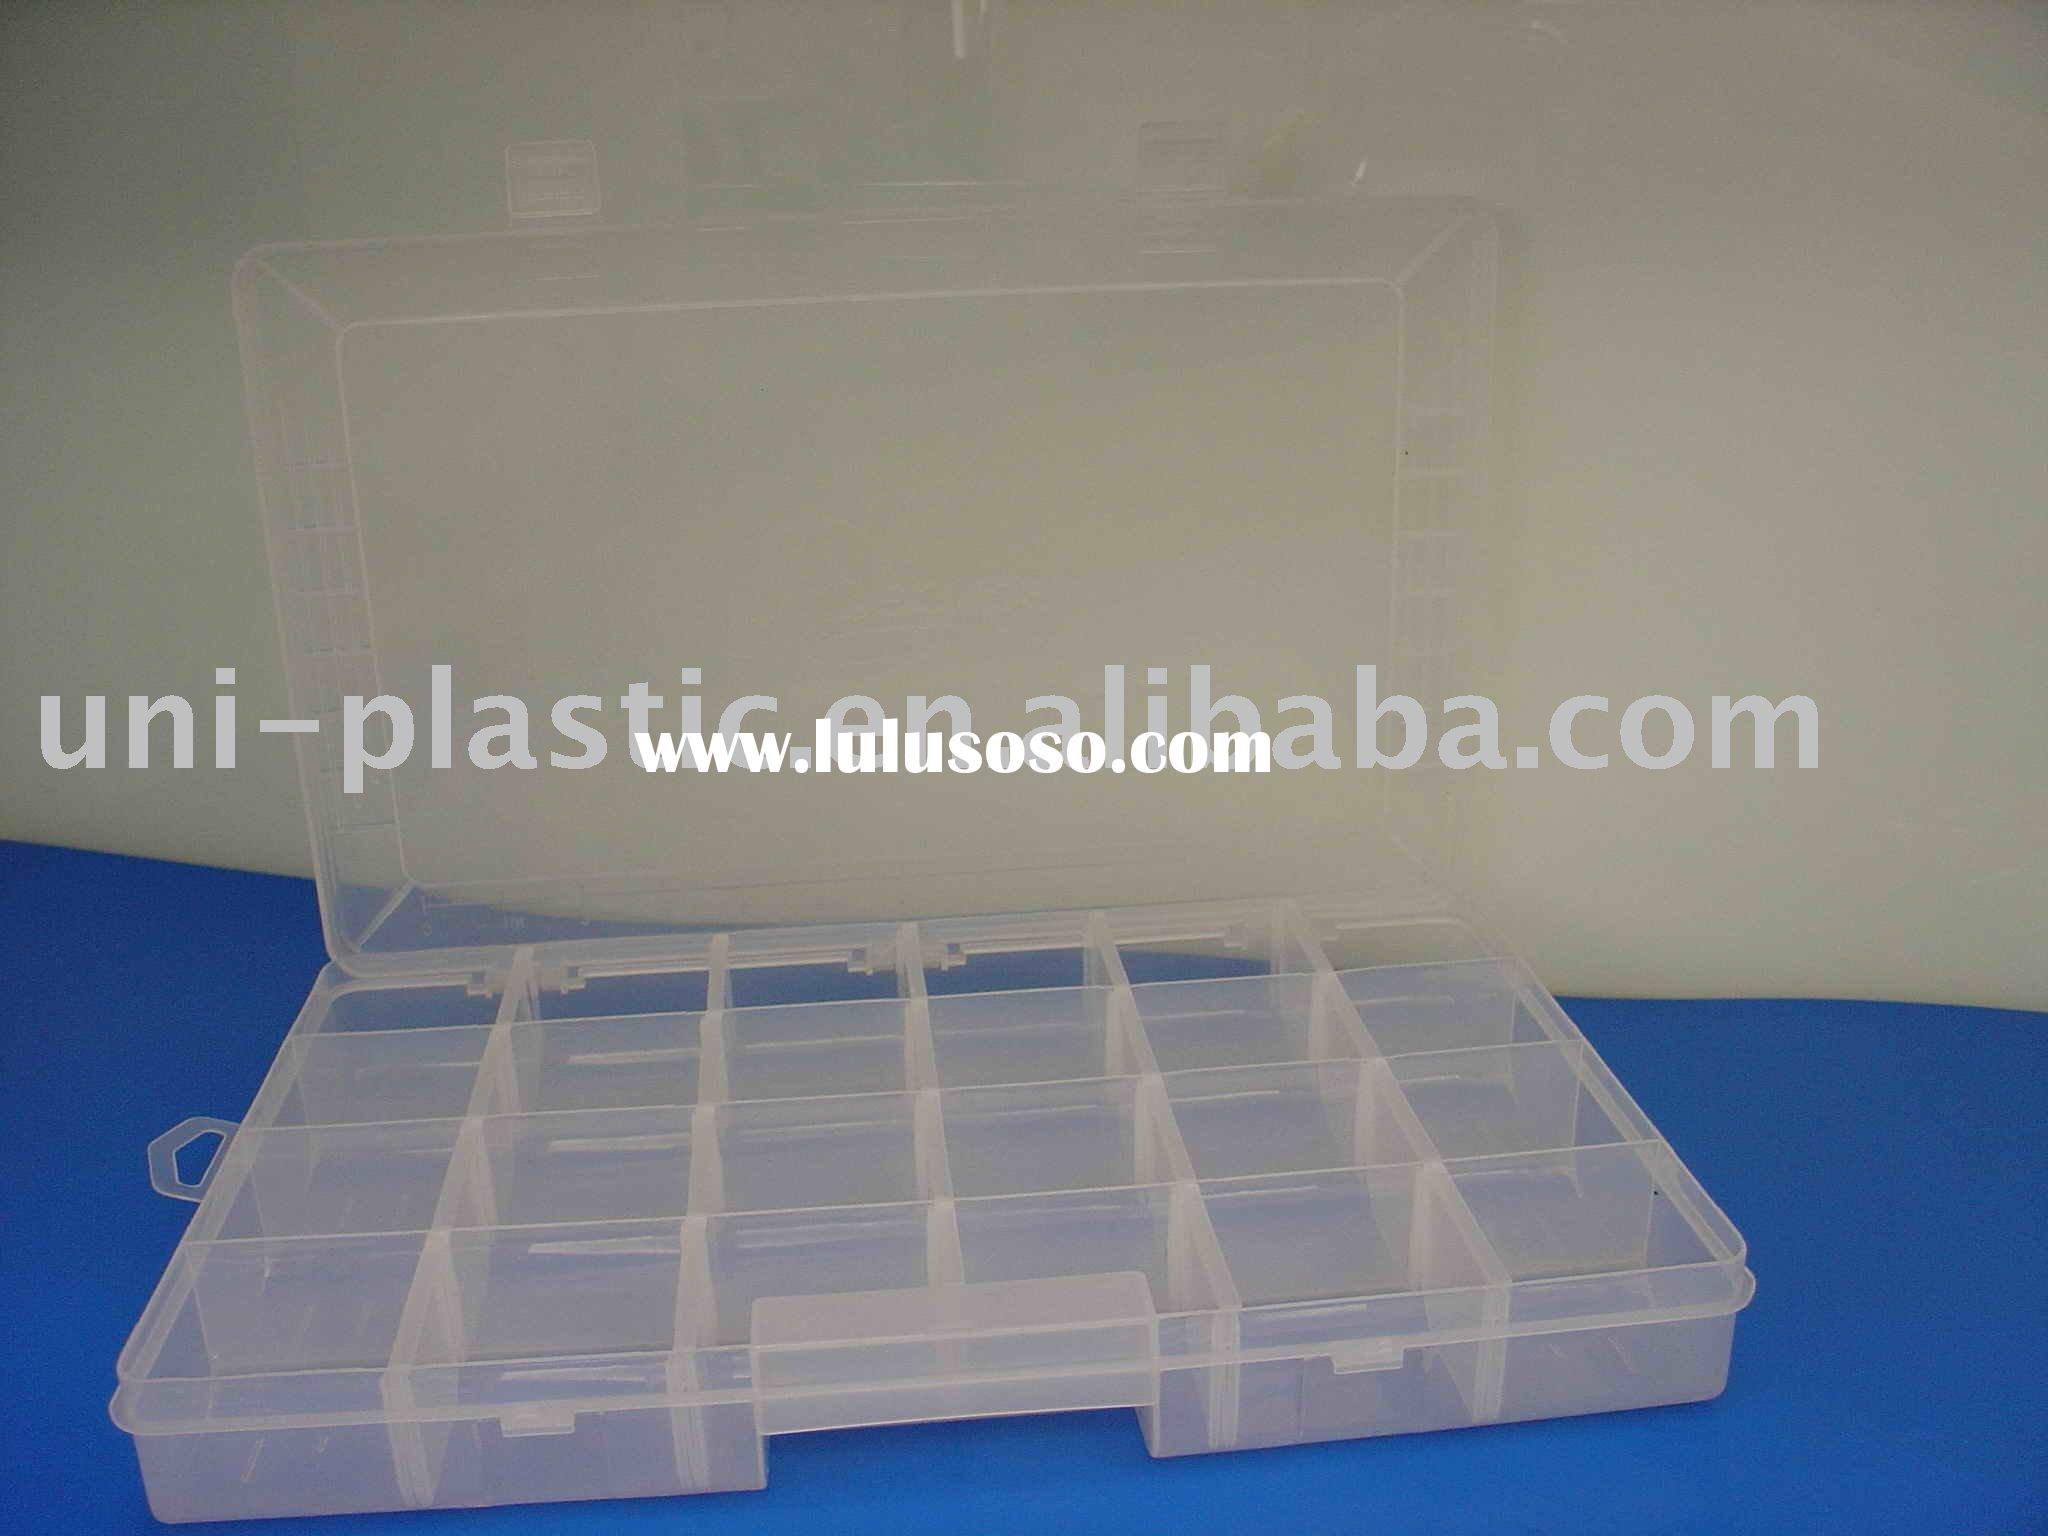 Fishing Tackle Box with 24 compartments (Removable Insert)